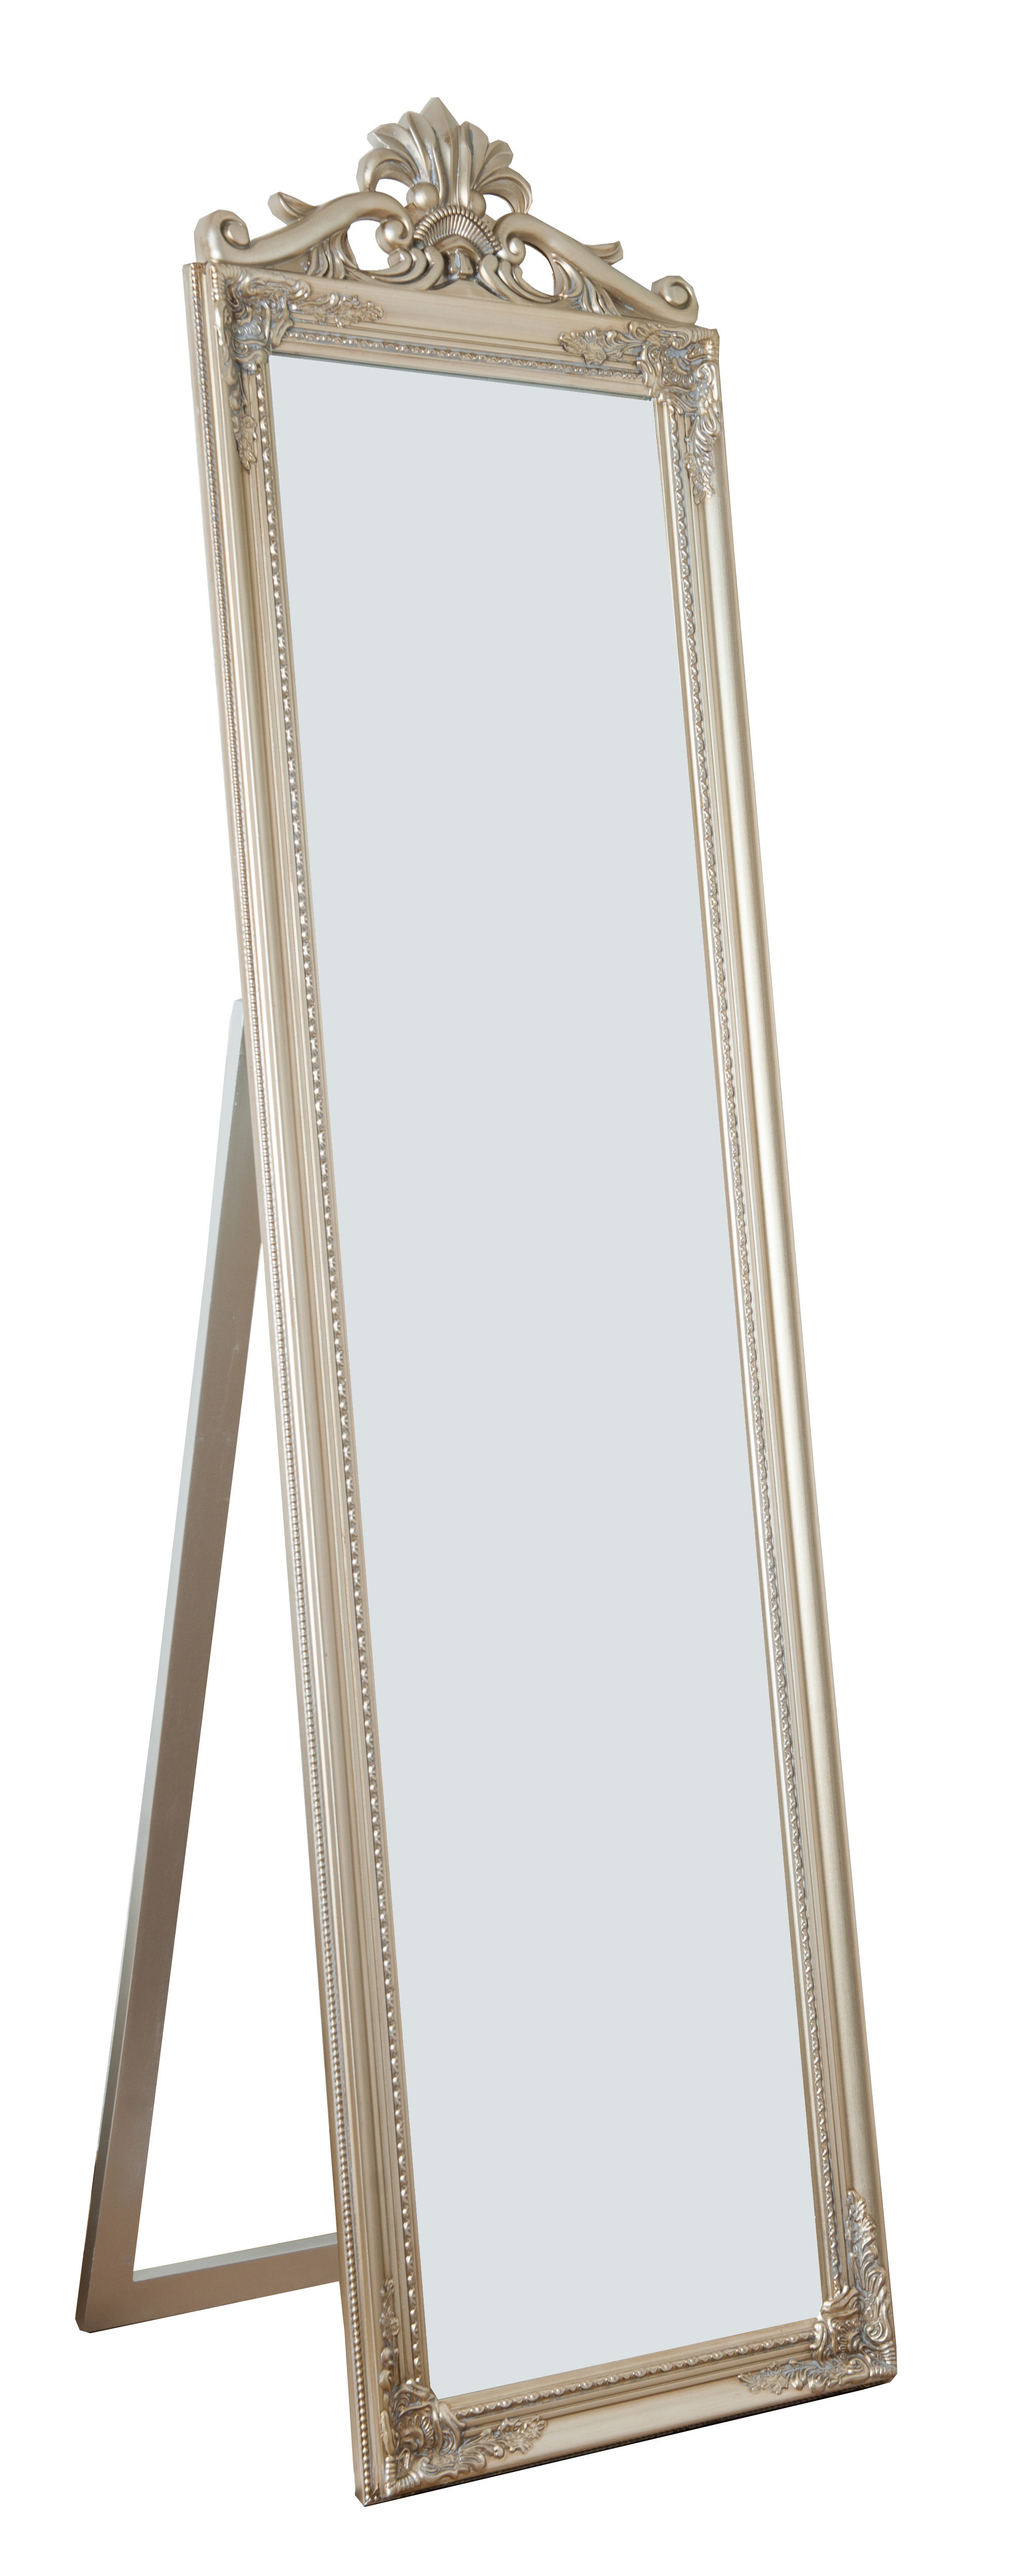 Fashionable Stand Up Wall Mirrors Throughout Maryana Antiqued Wood Standing Wall Mirror (View 5 of 20)